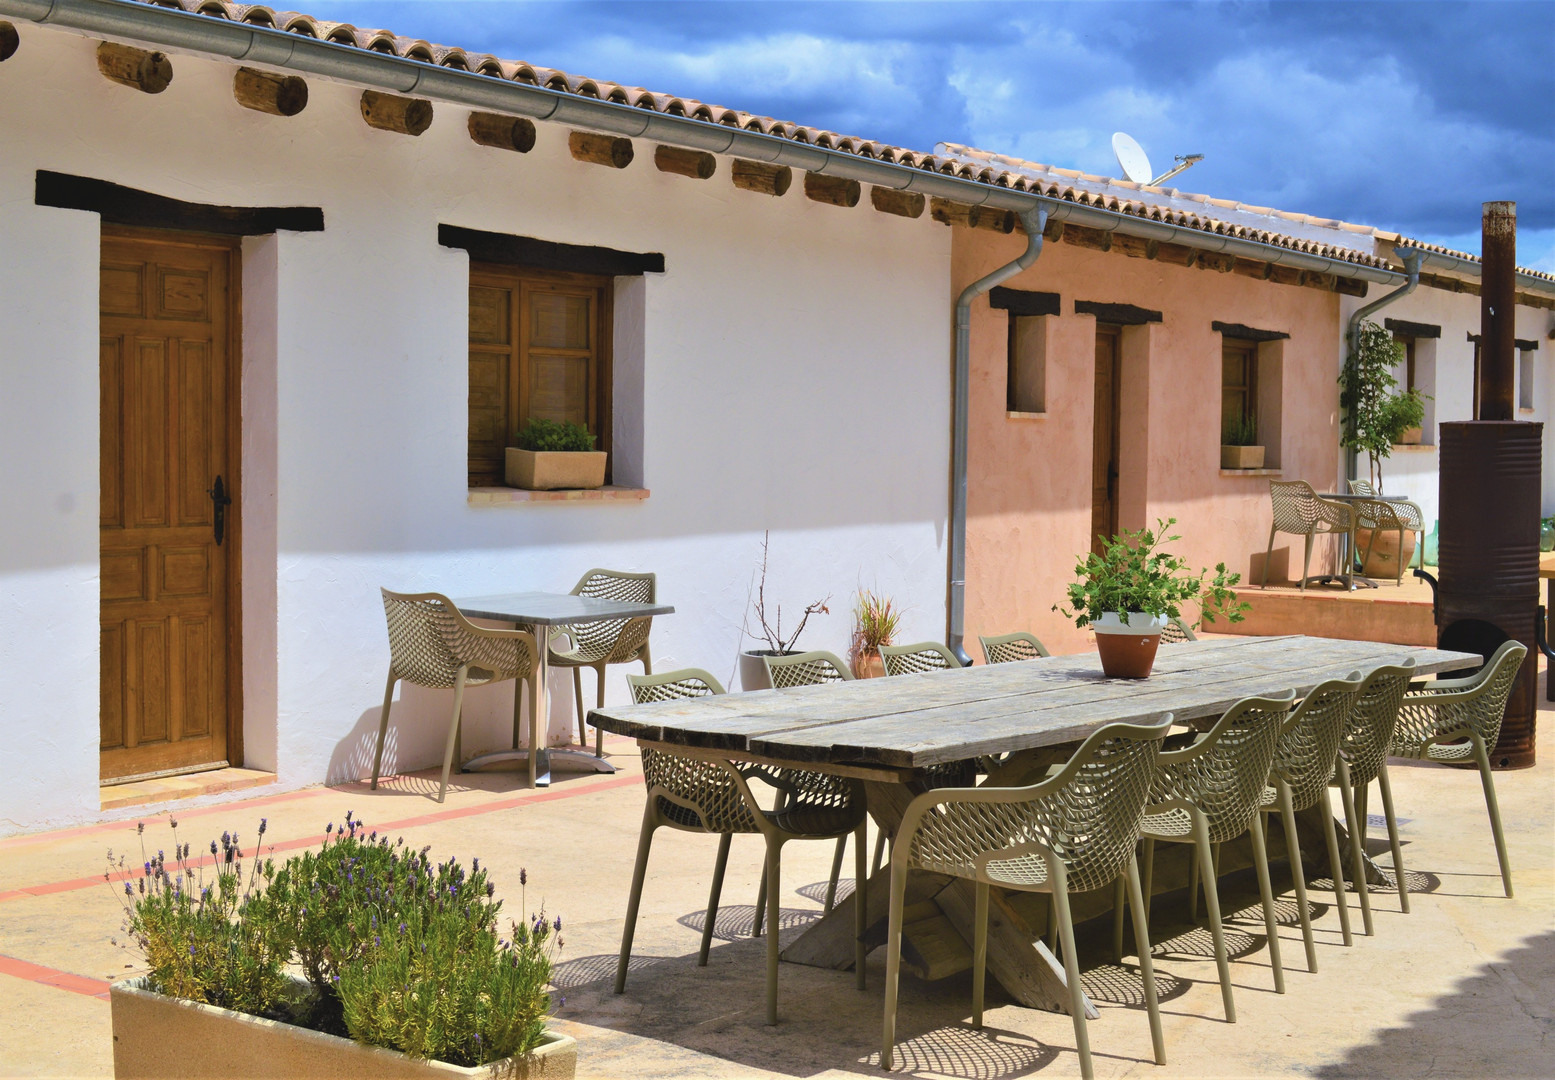 Room with private terrace in courtyard e